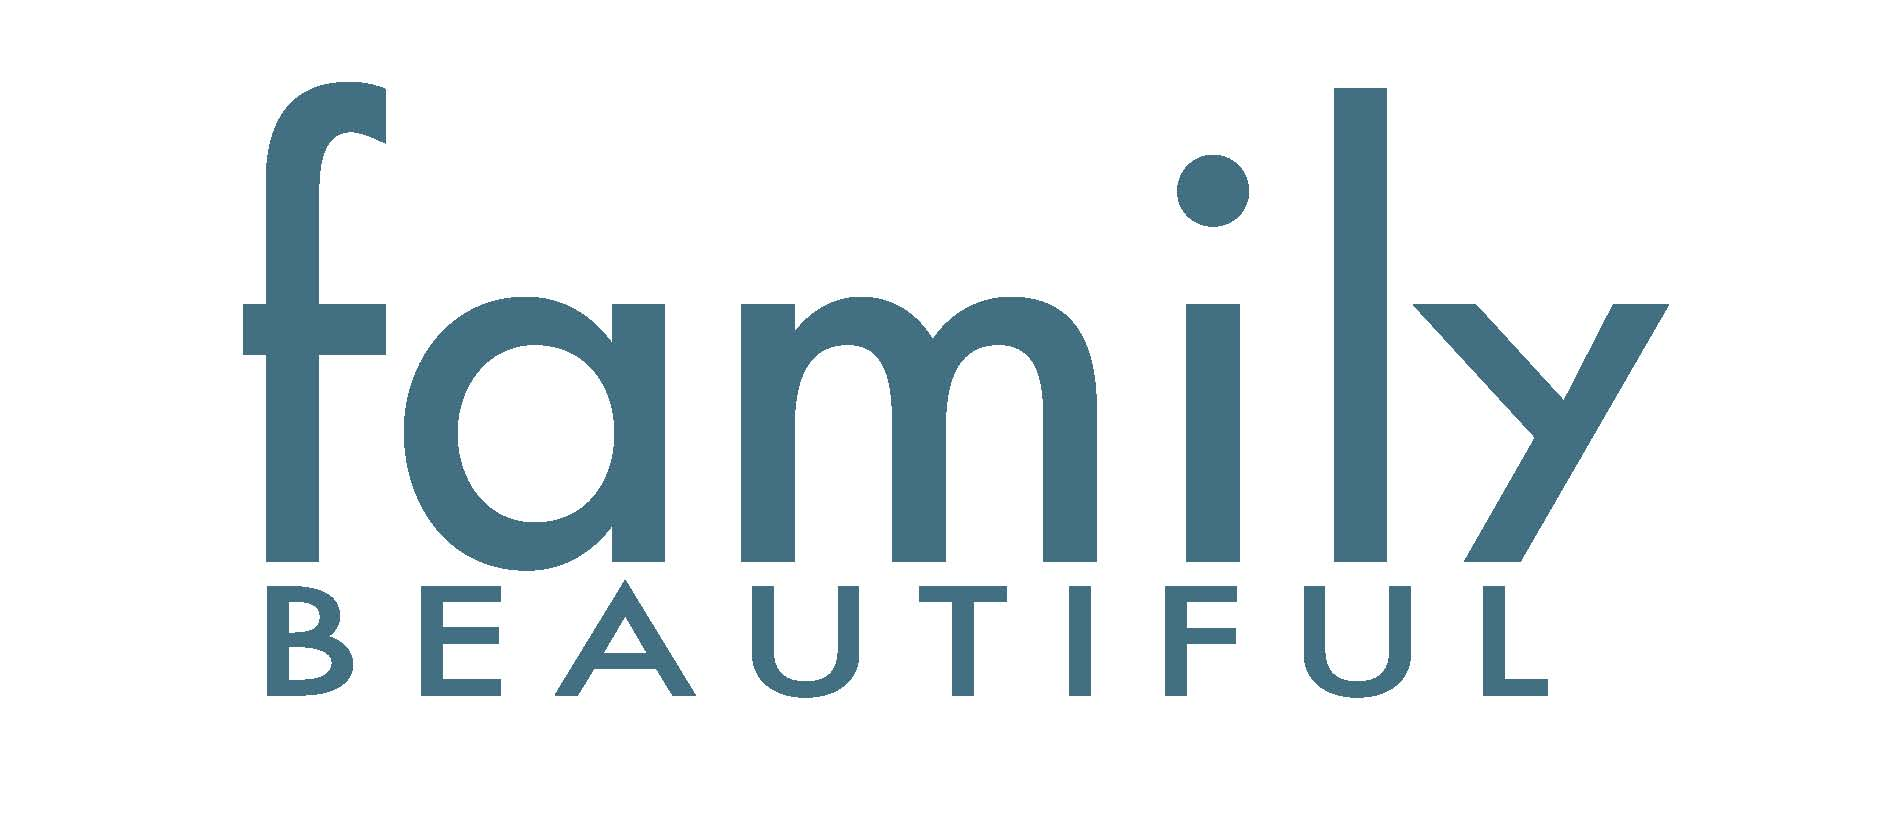 FLC_Walk_Family_Beautiful_logo